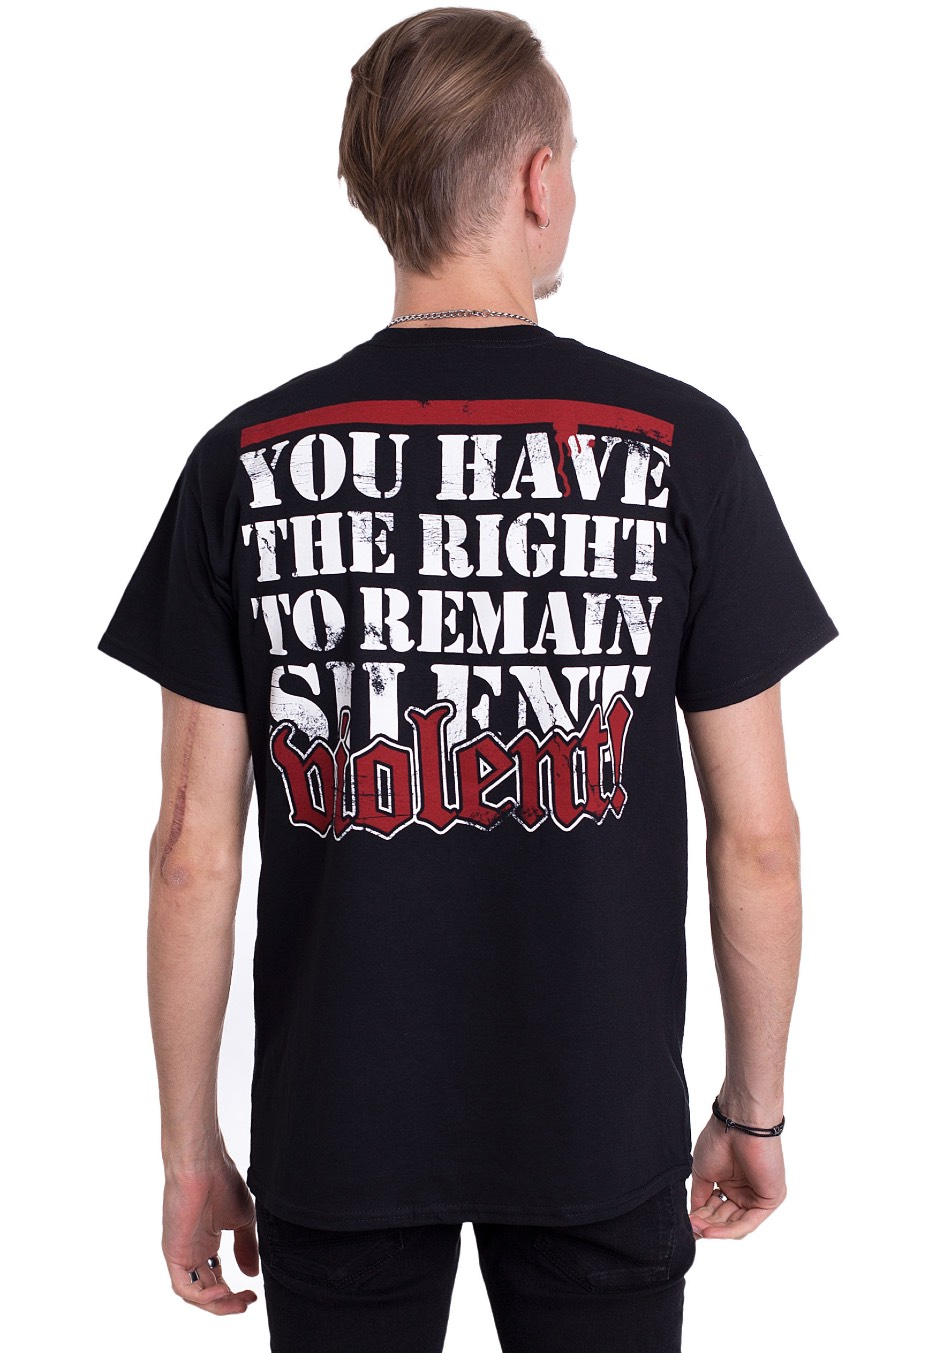 Fuck the police t shirt images 5